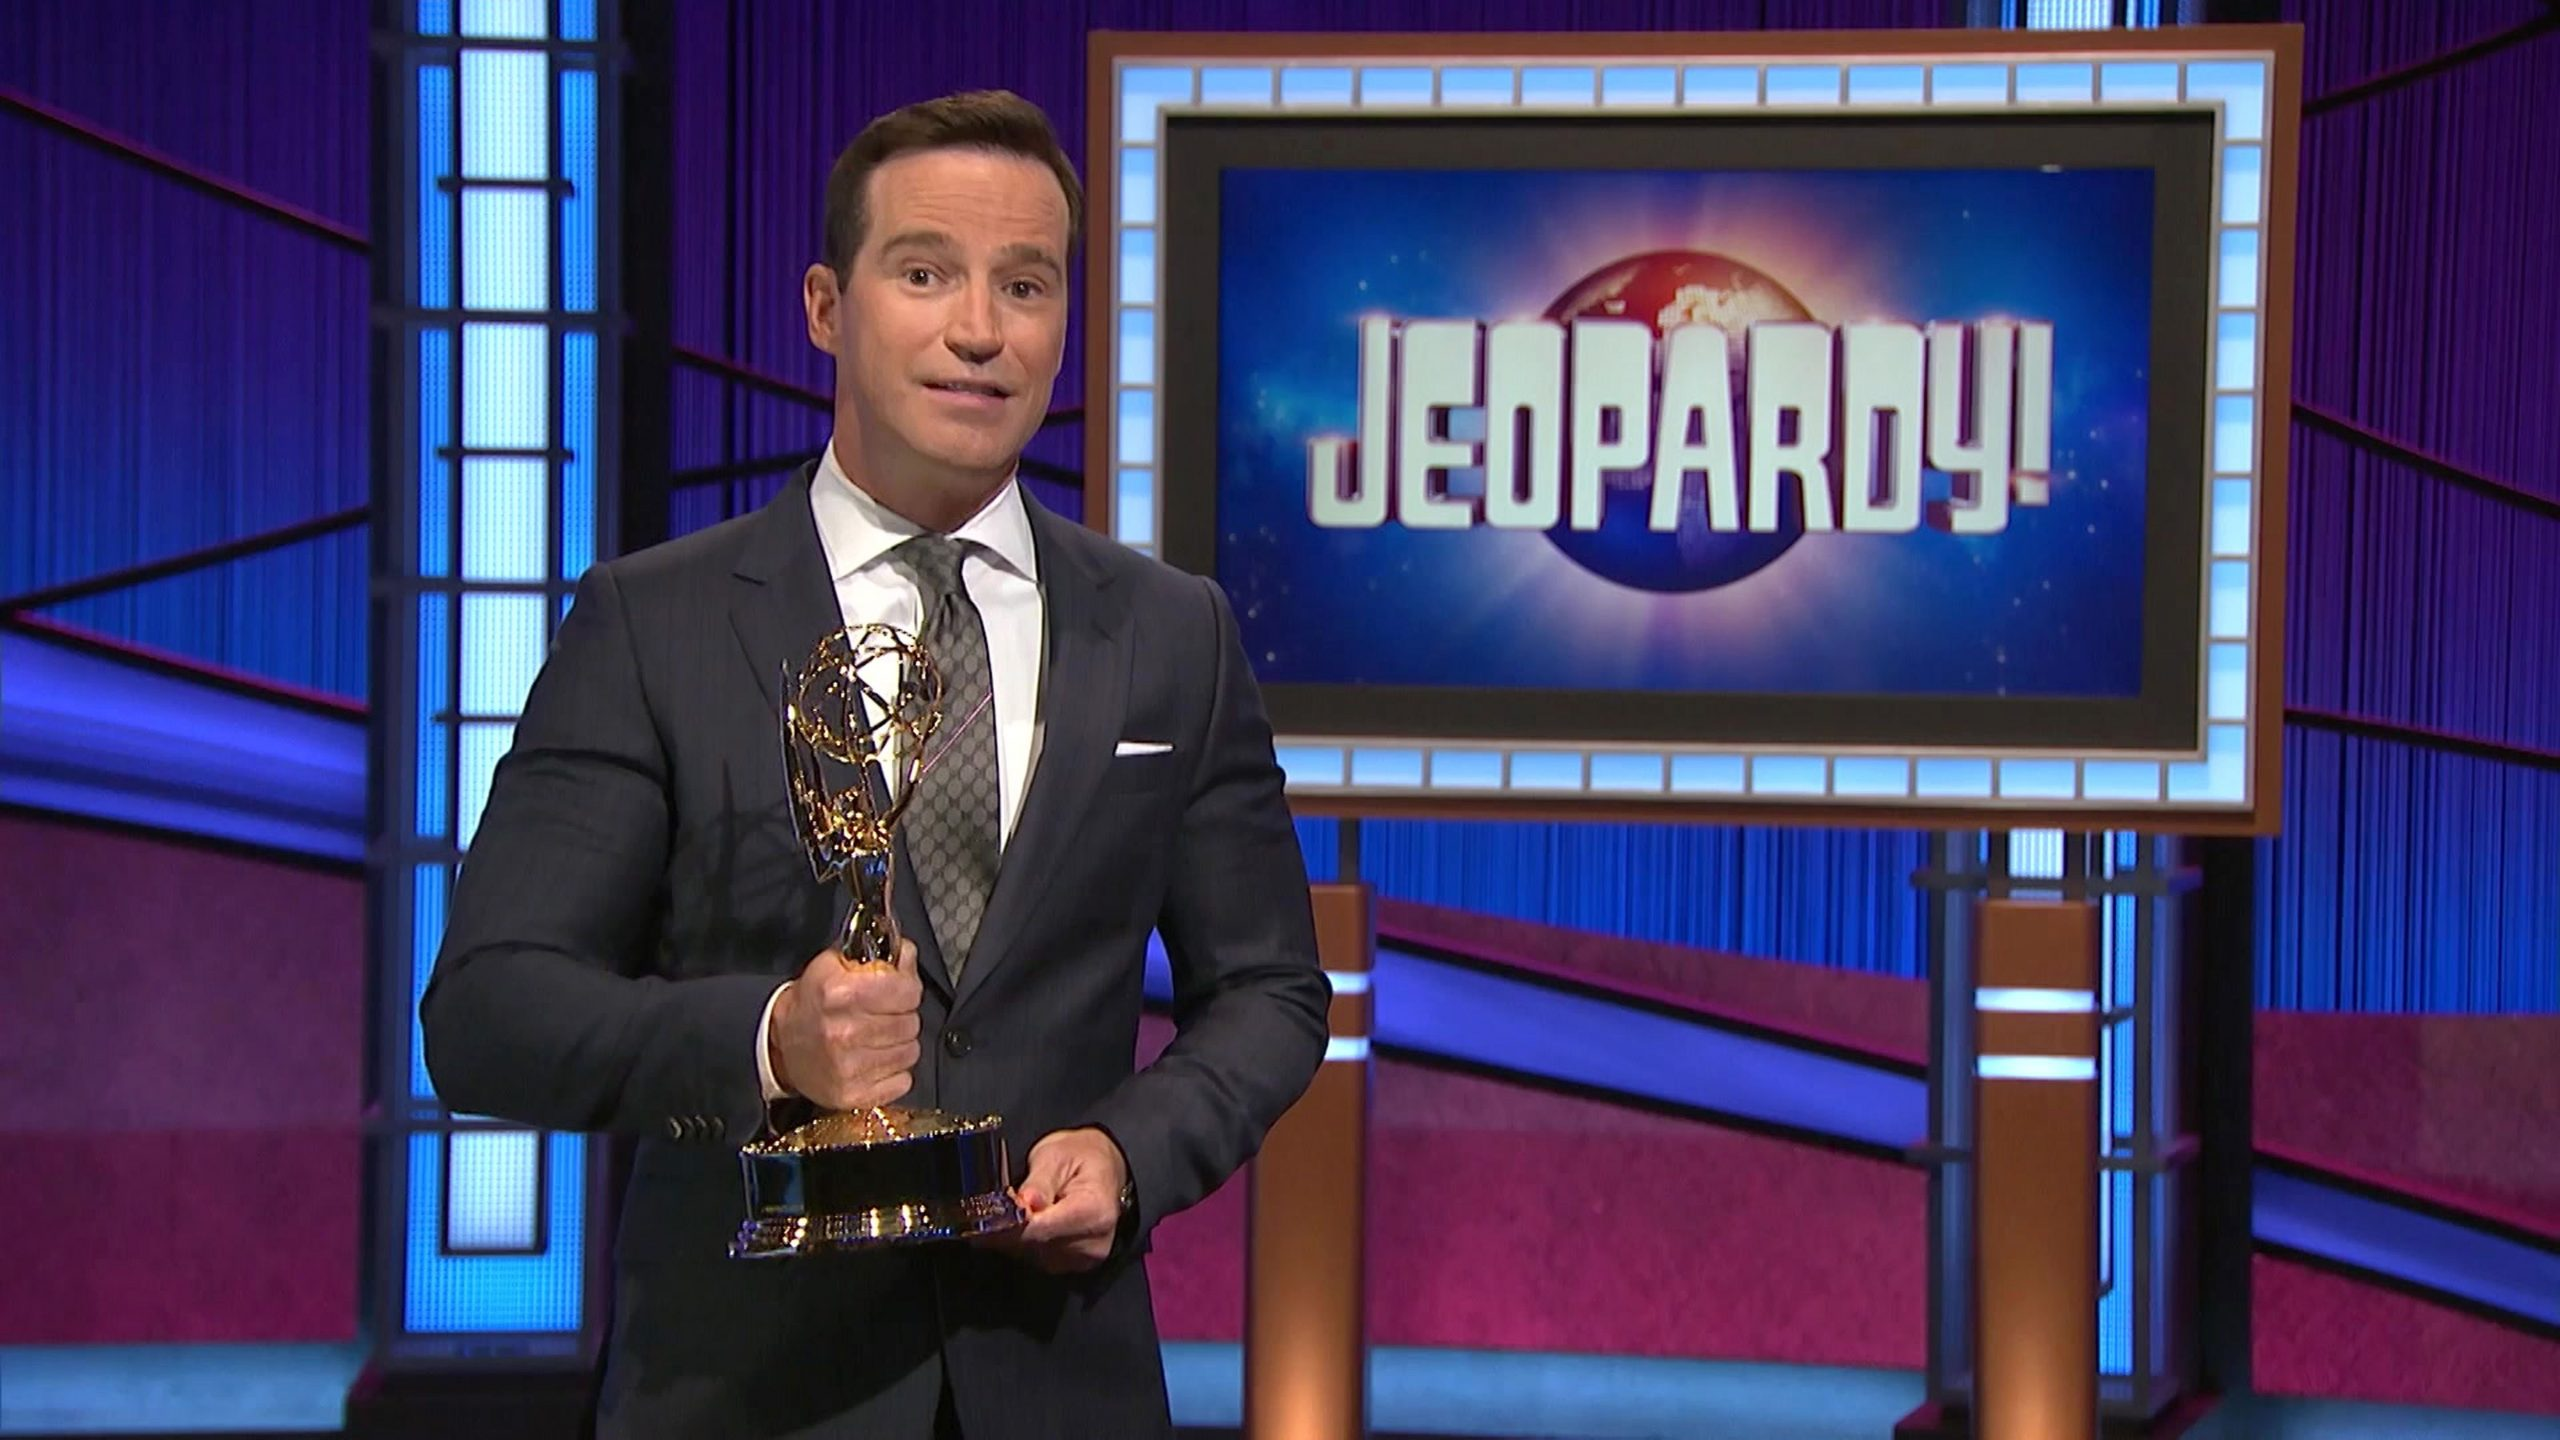 'Jeopardy!' new host and executive producer Mike Richards